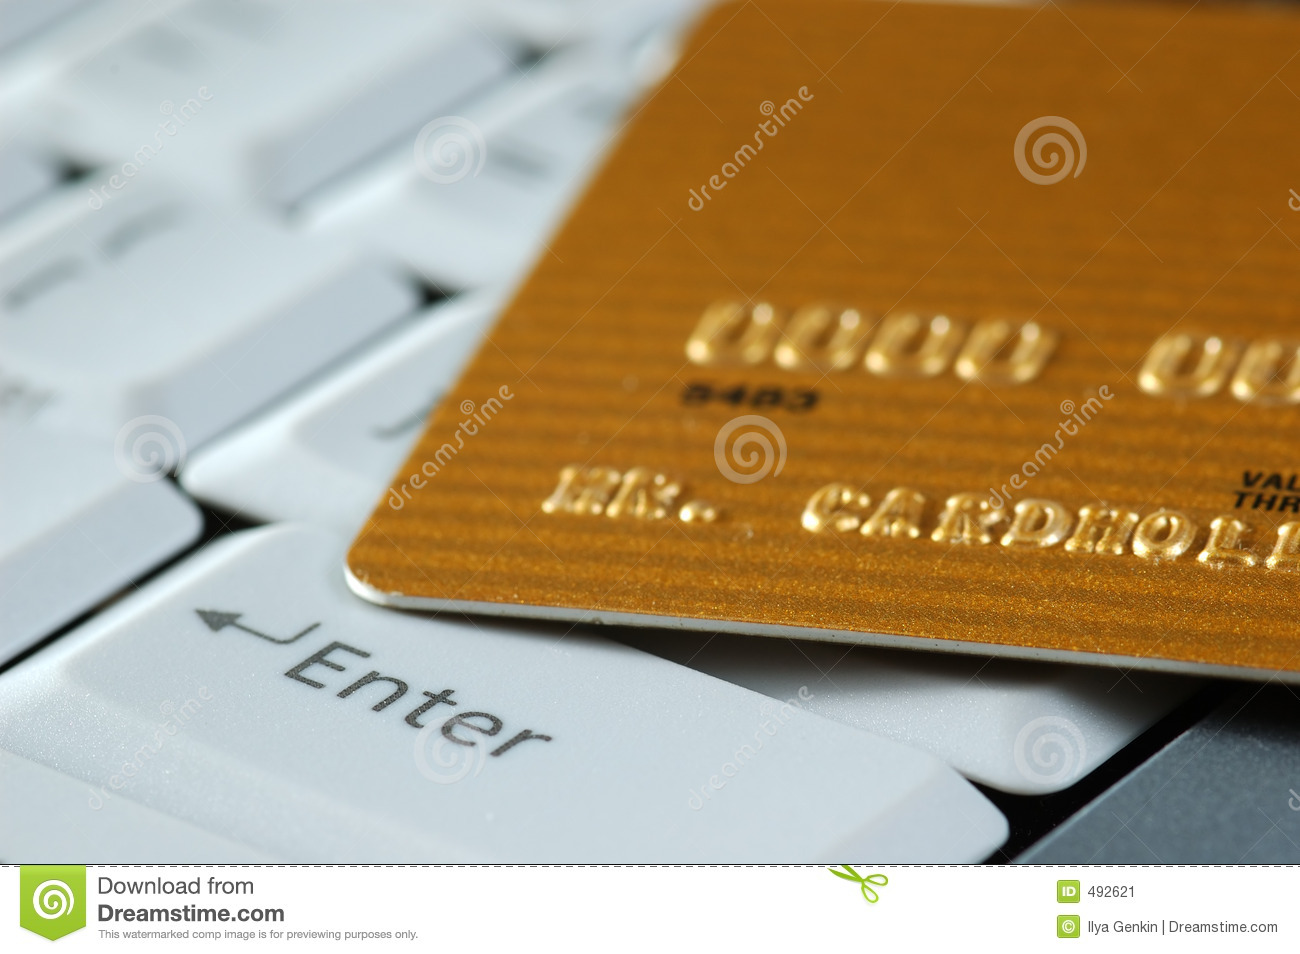 how to get a gold credit card